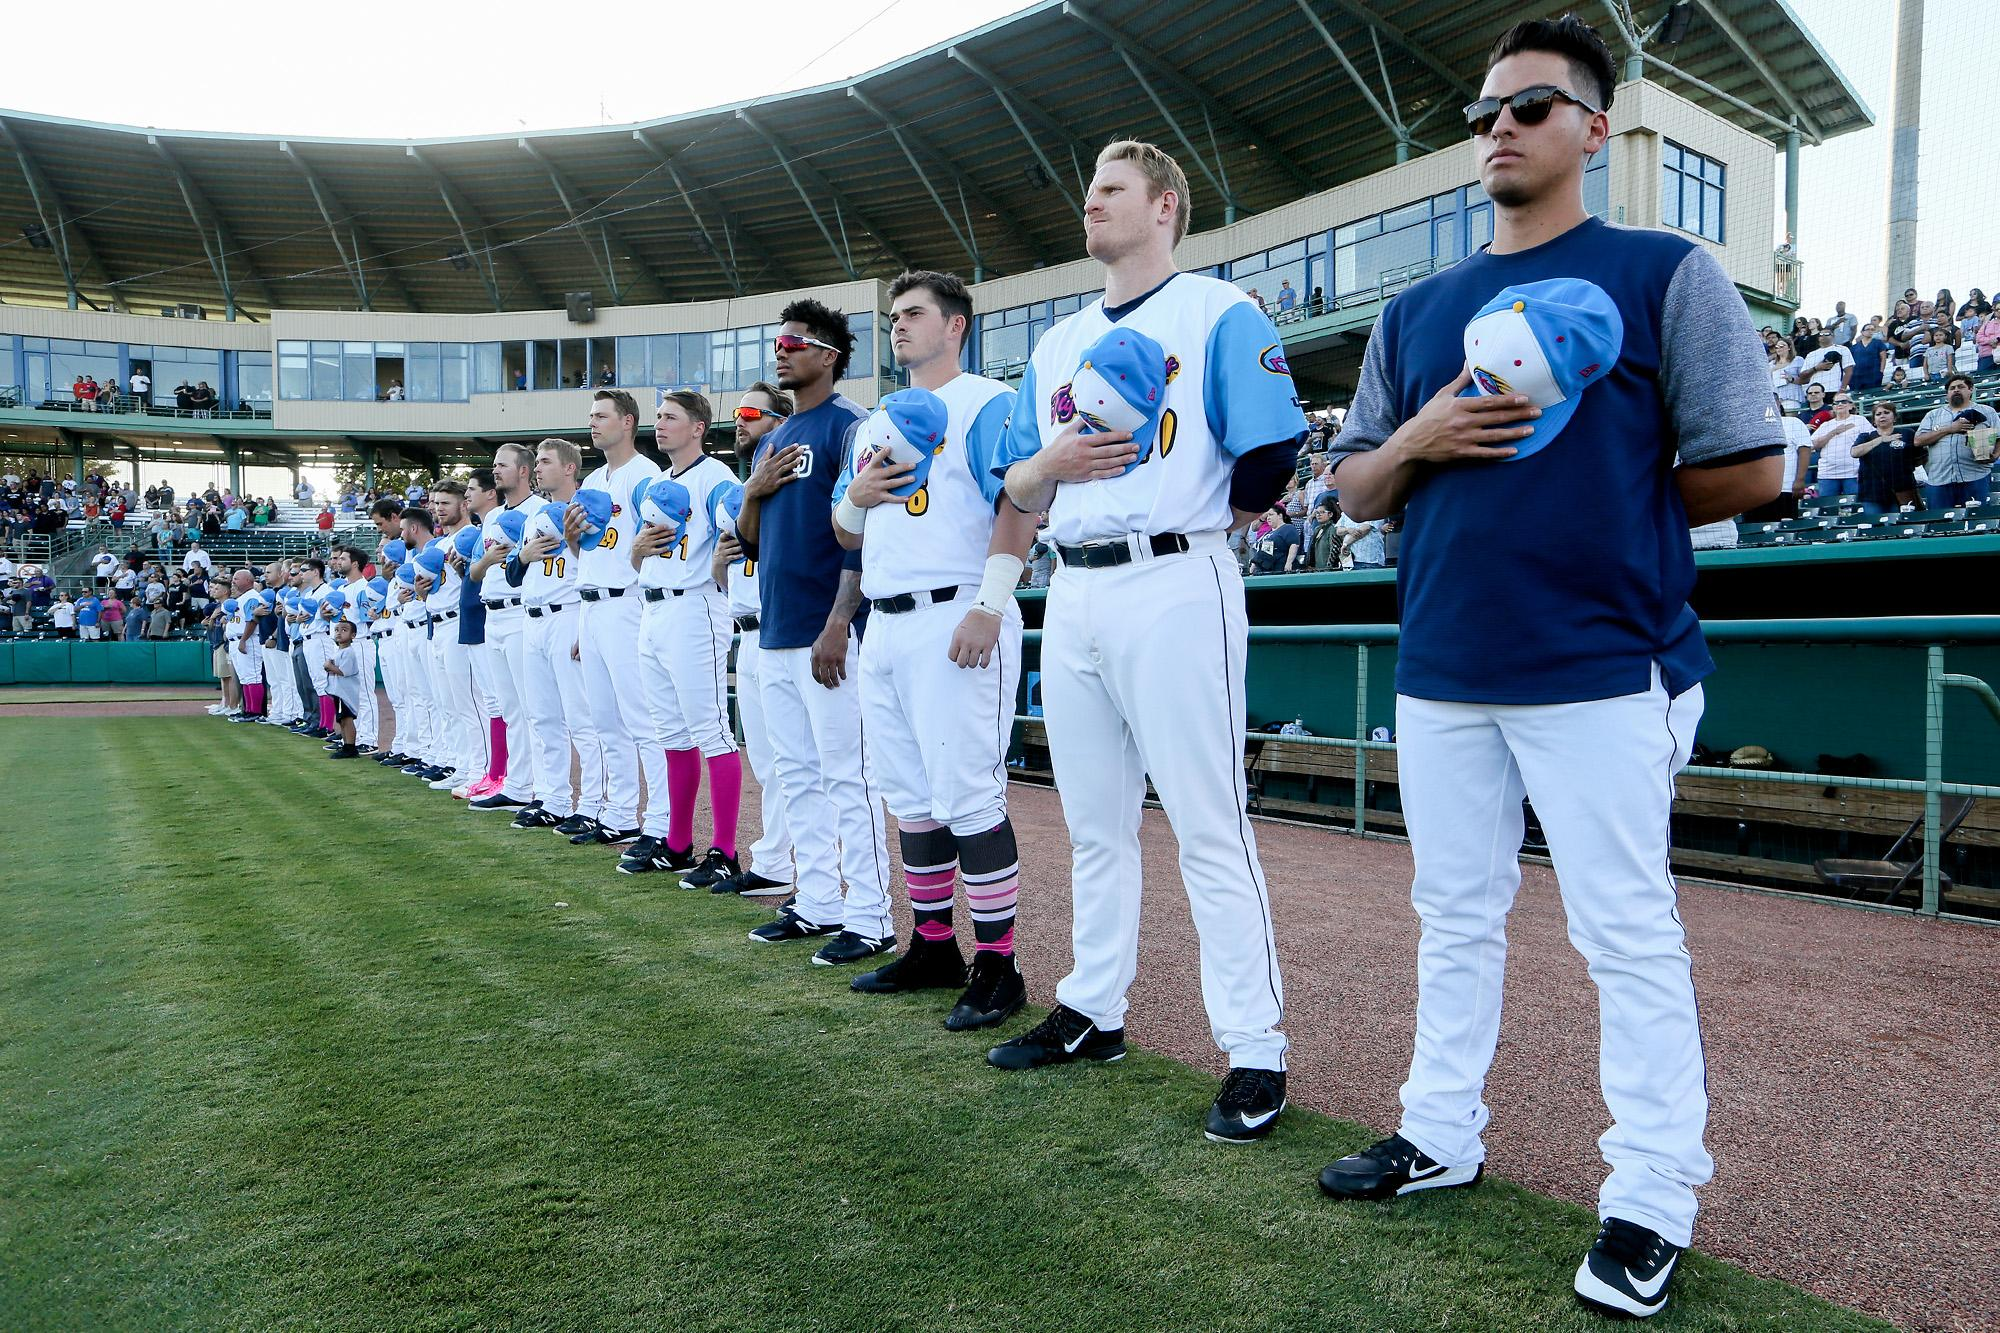 San Antonio Missions Schedule 2020 As Missions move to Triple A, stadium dilemma looms over future